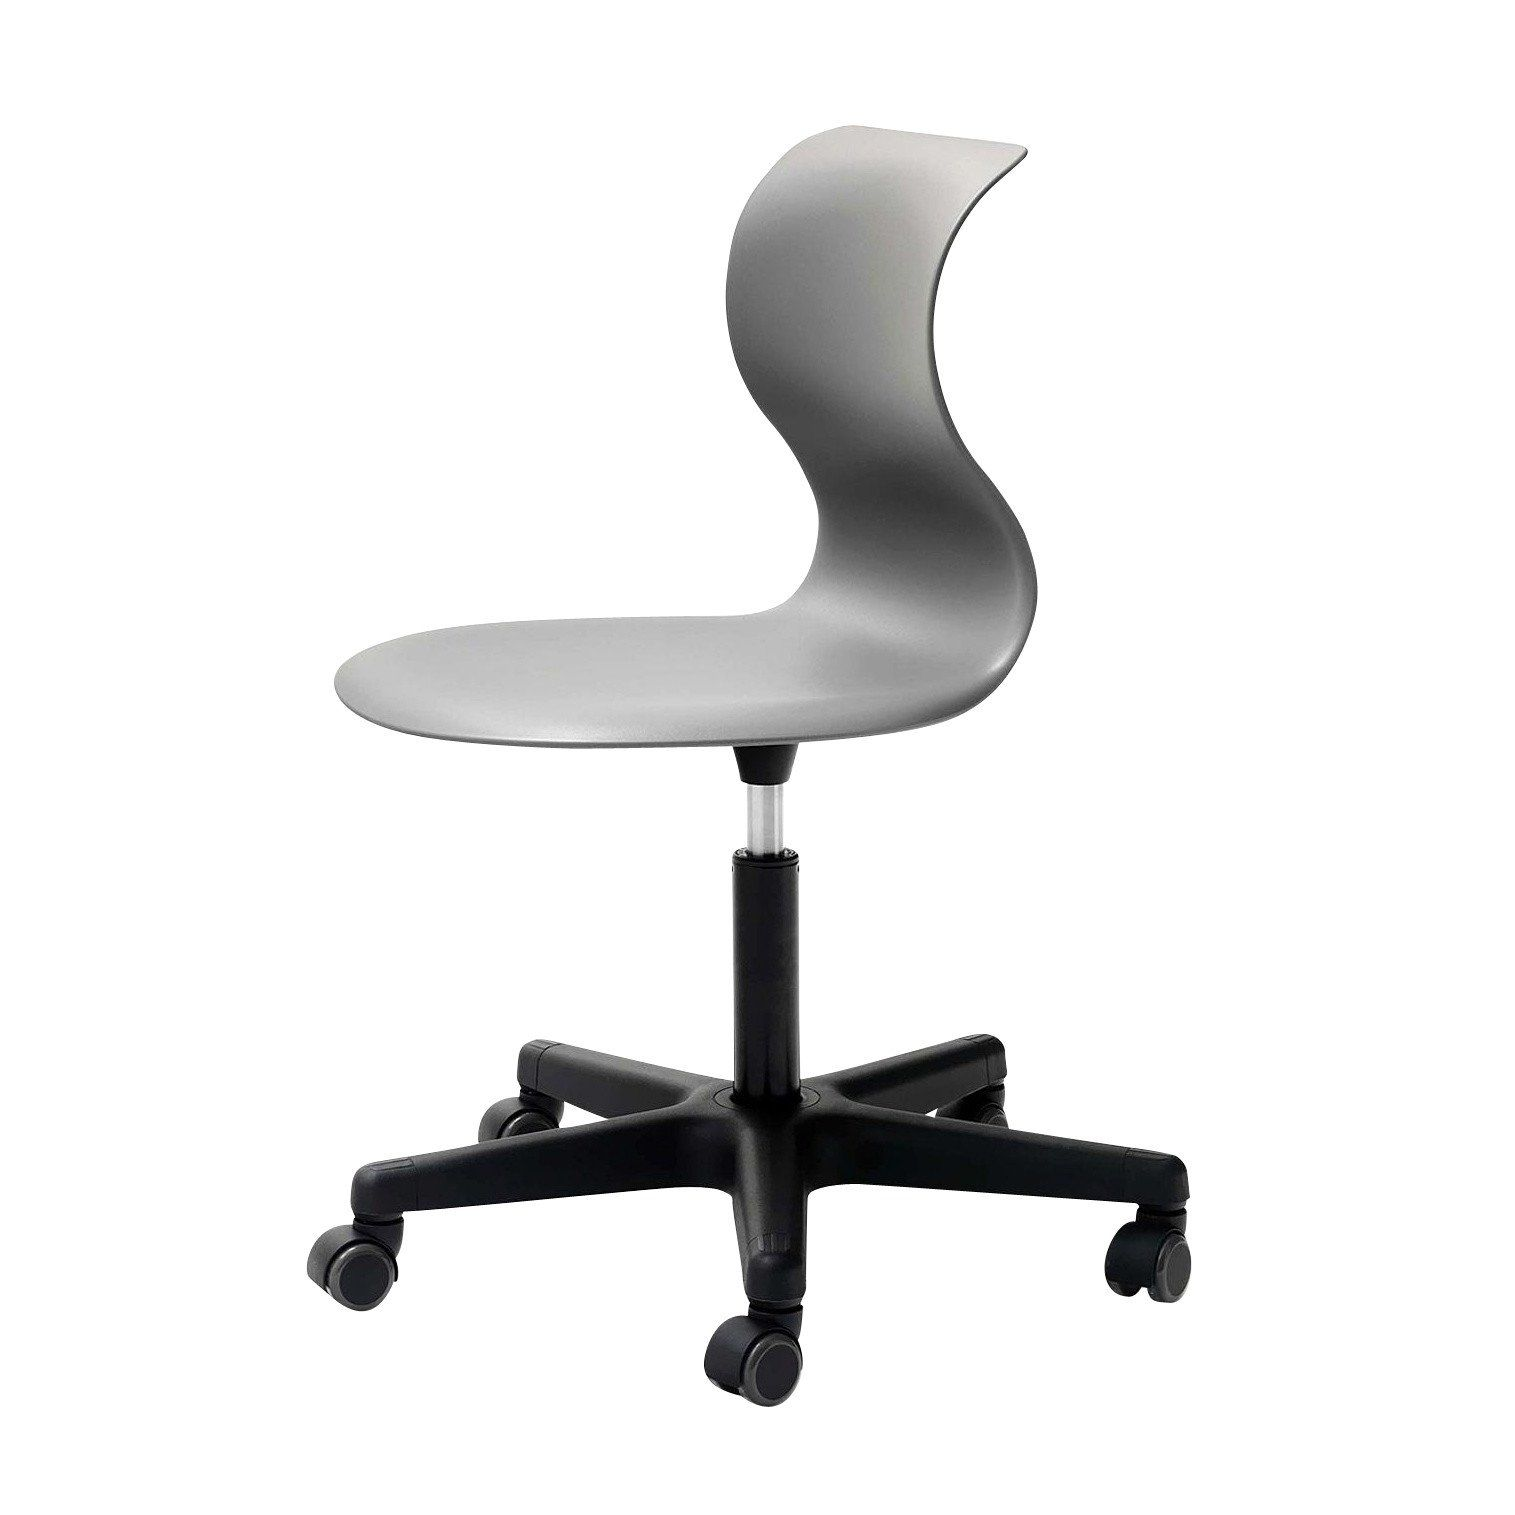 chair with wheels isabella dining pro 6 swivel flötotto ambientedirect